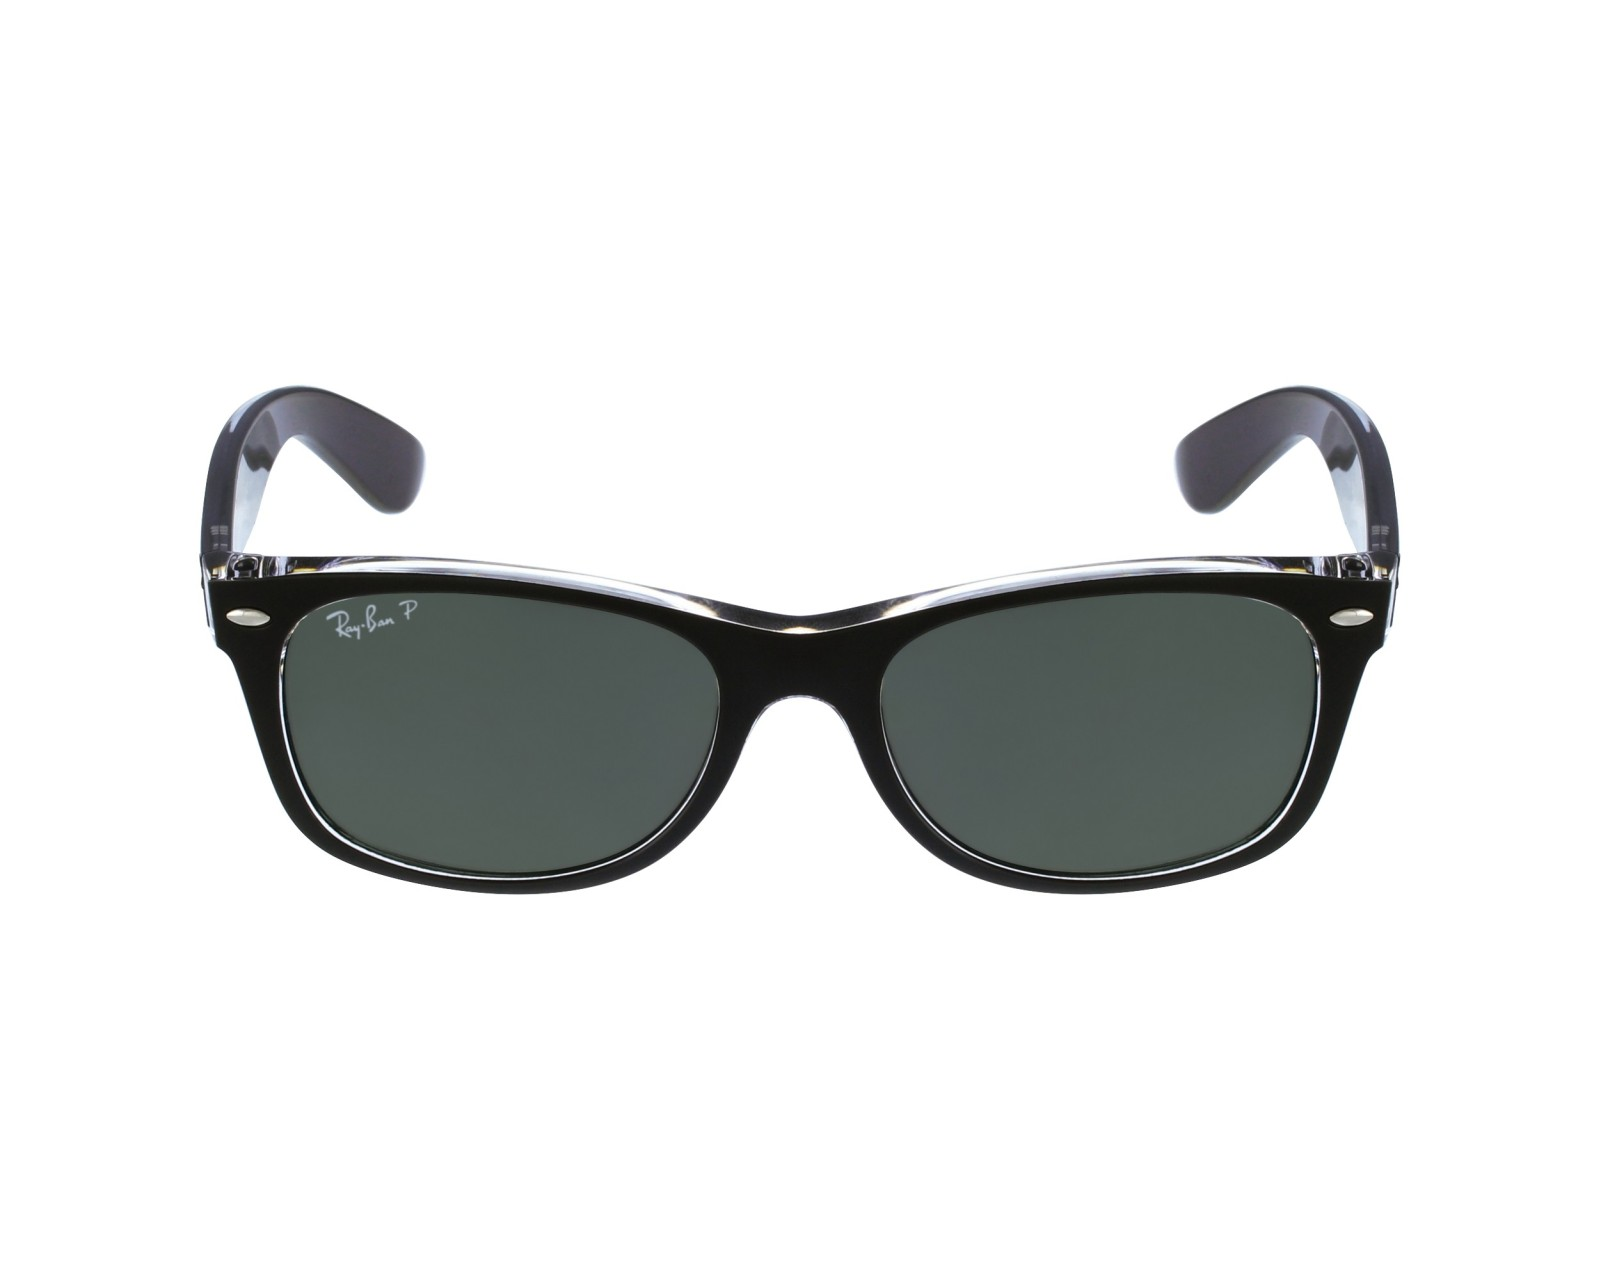 3d02c7ebc27 Sunglasses Ray-Ban RB-2132 605258 52-18 Black profile view